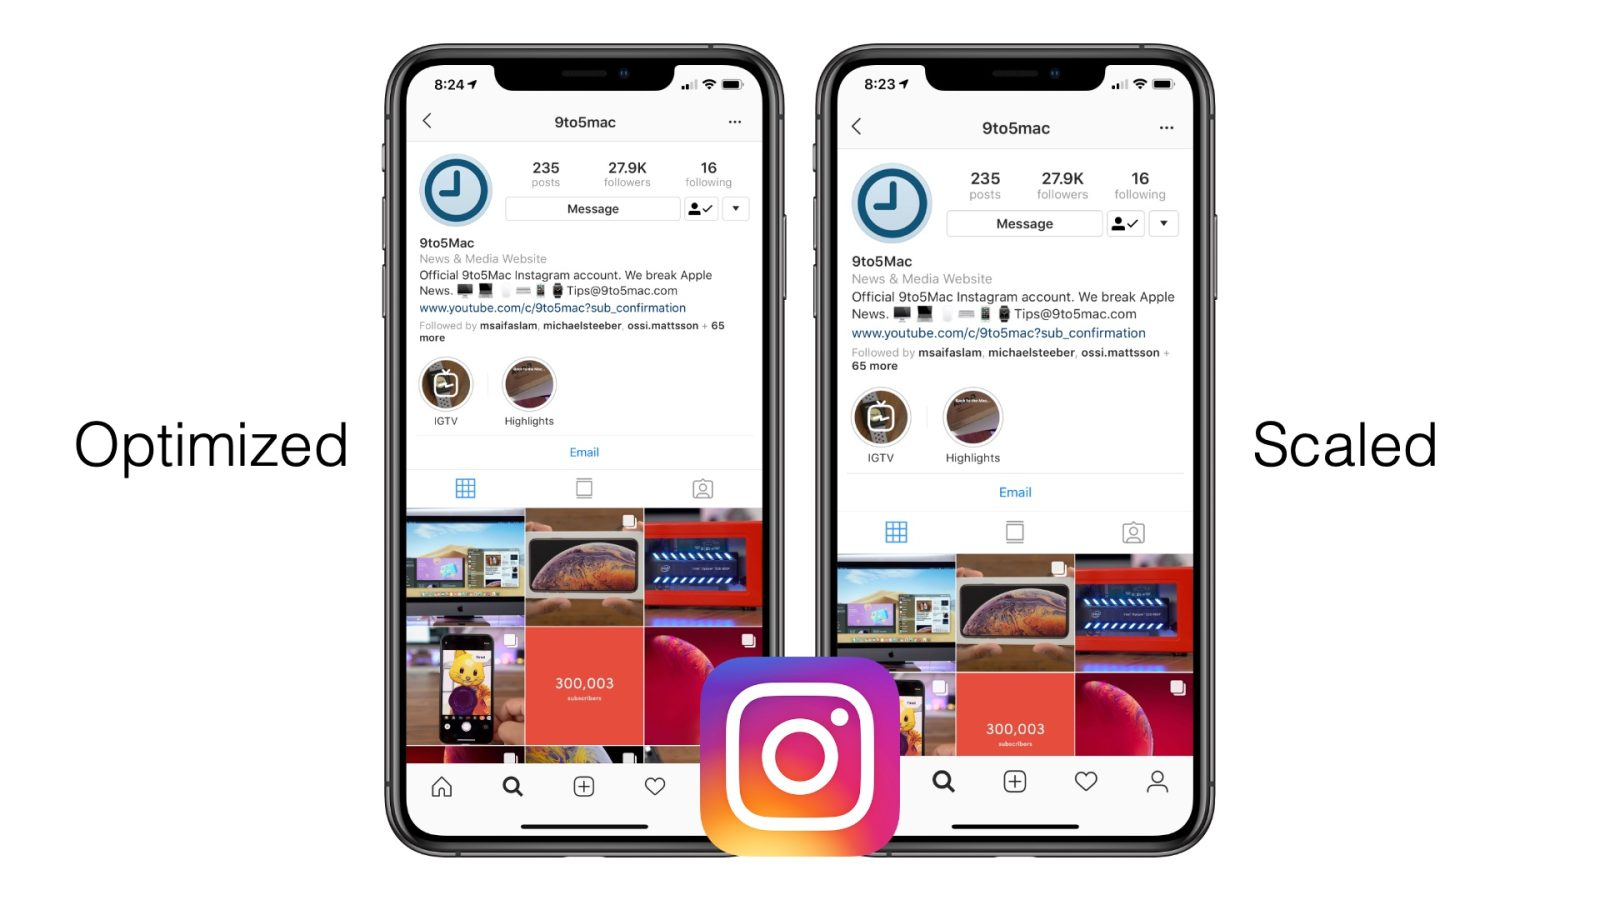 Instagram Updated For Iphone Xs Max And Iphone Xr 9to5mac